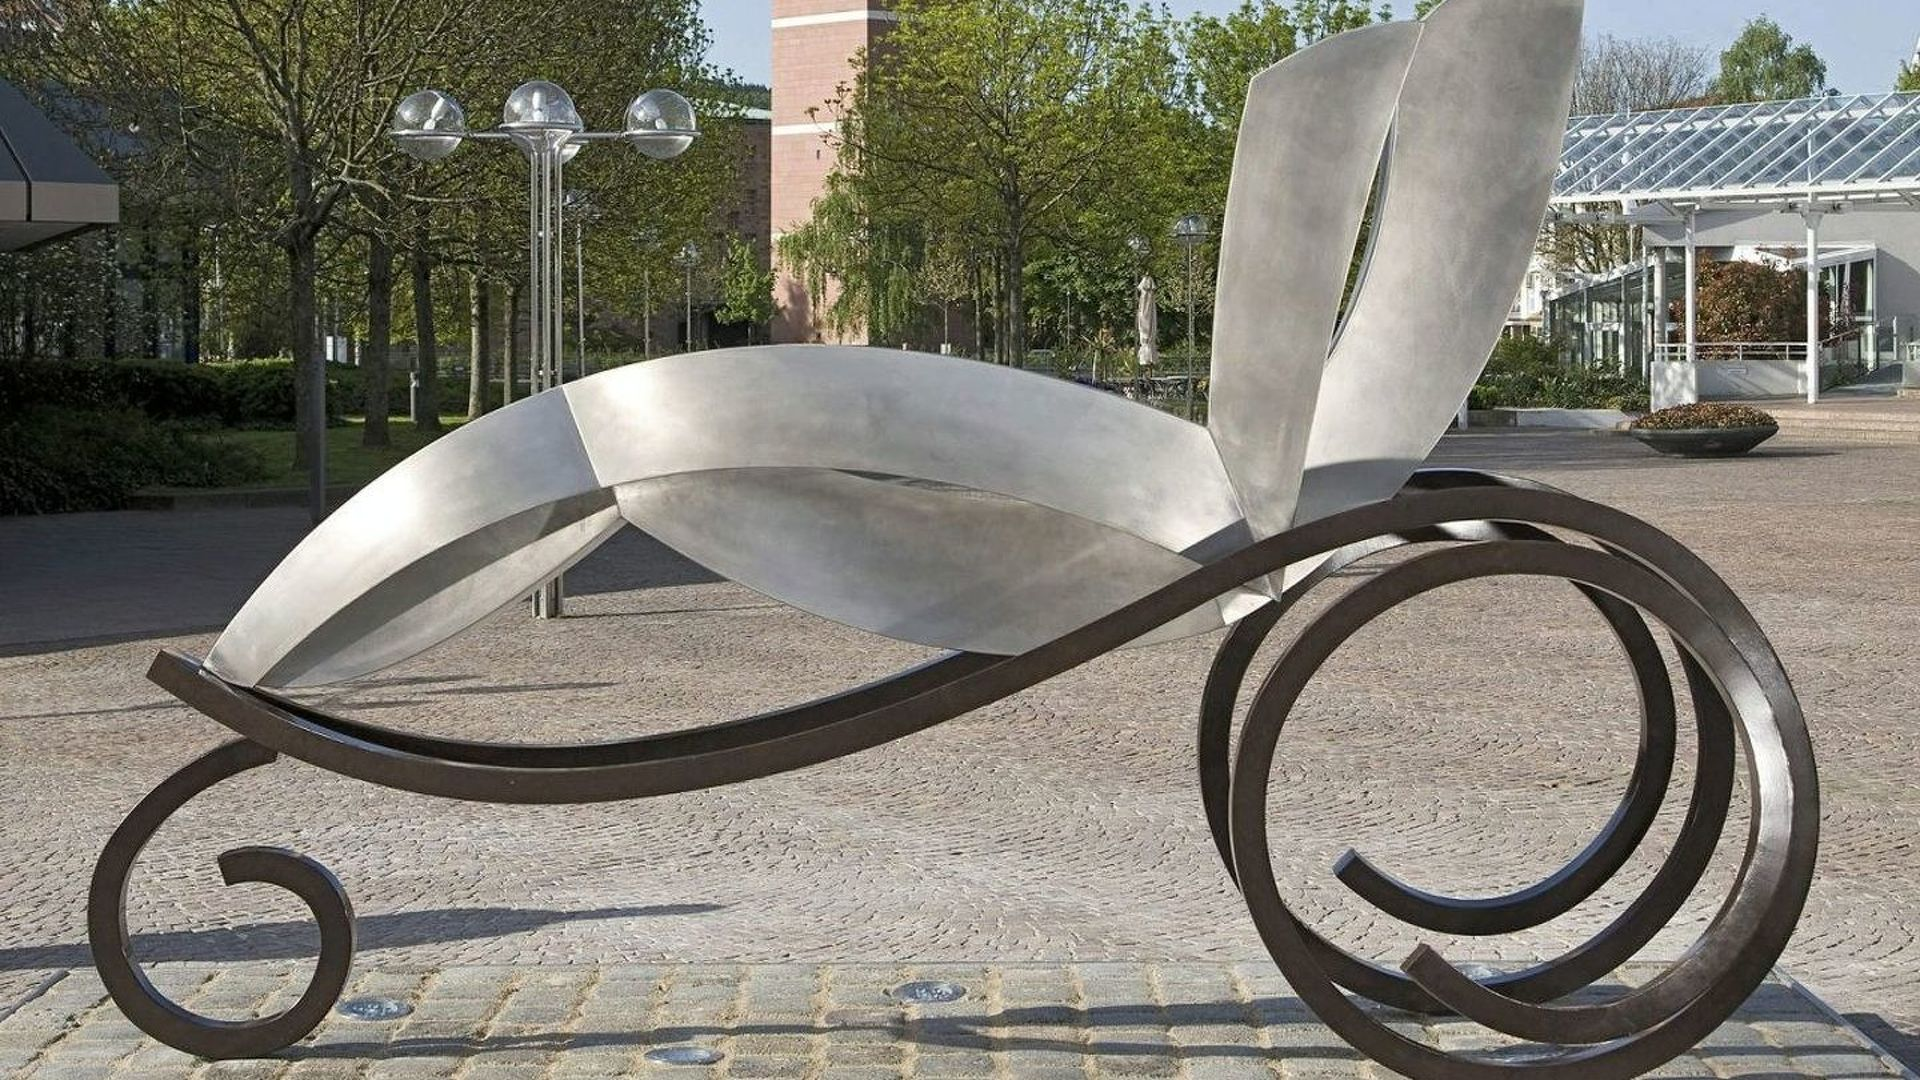 New Monument to Commemorate Bertha Benz in Pforzheim